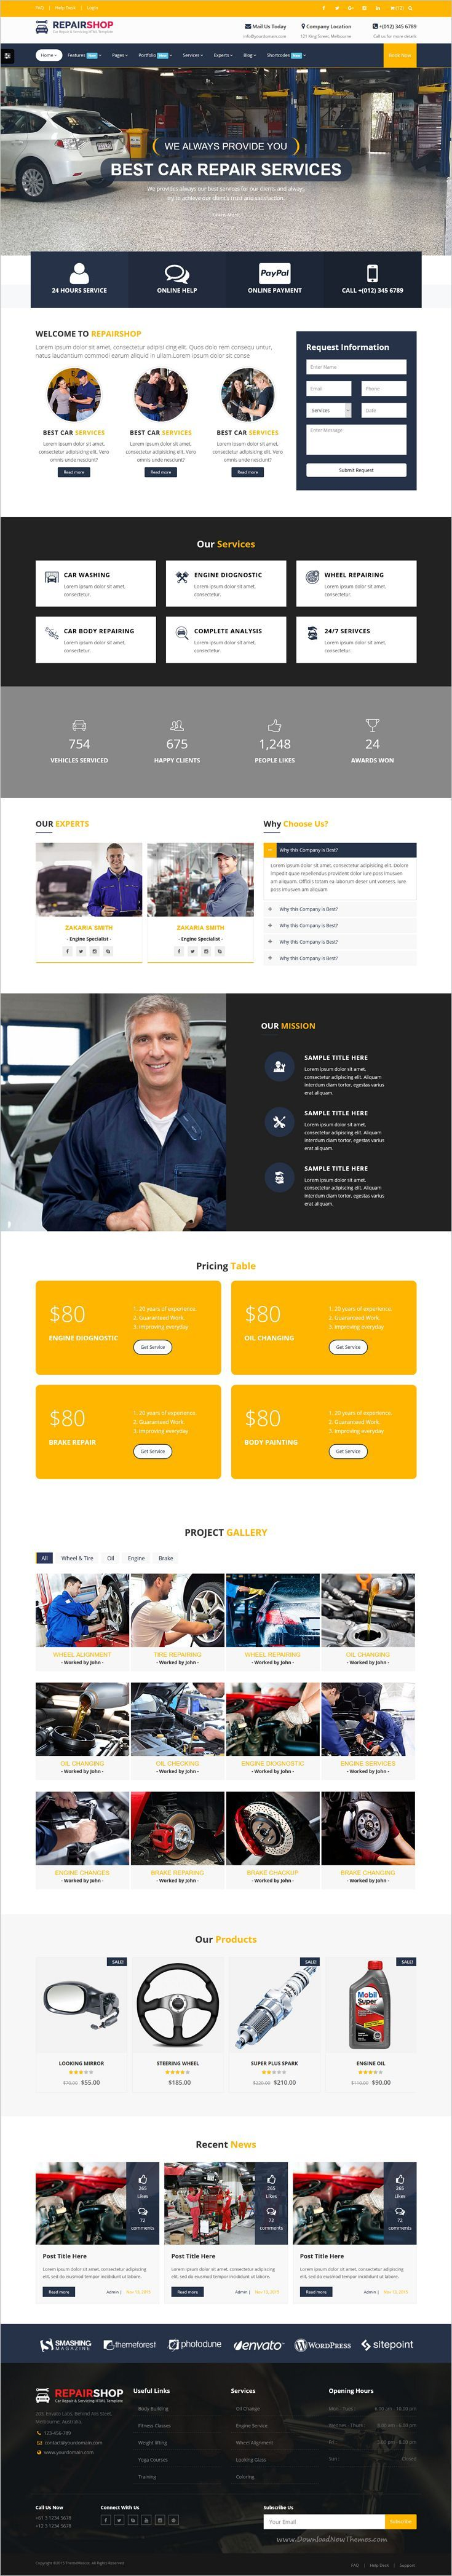 Repairshop is a wonderful responsive html bootstrap template for car repair garage